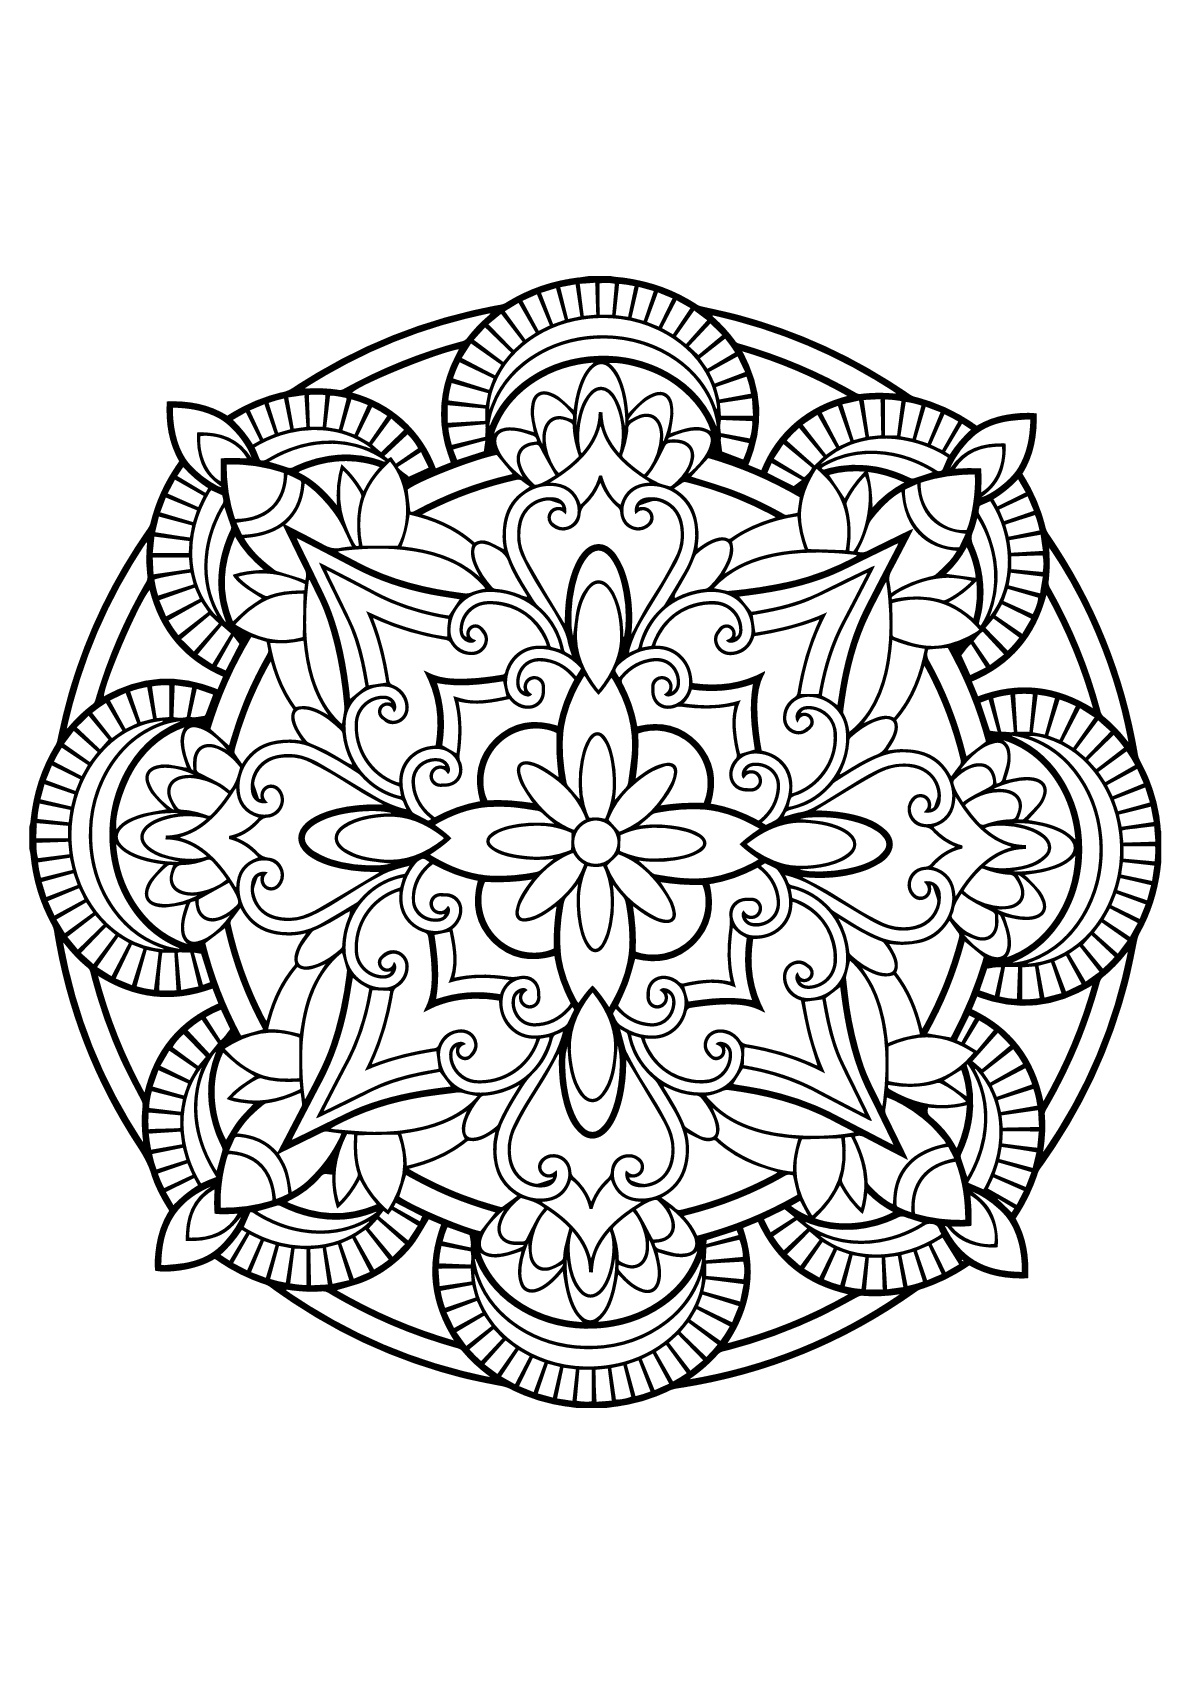 mandala coloring pages free printable adults coloring | Mandalas to color for children - Mandalas Kids Coloring Pages